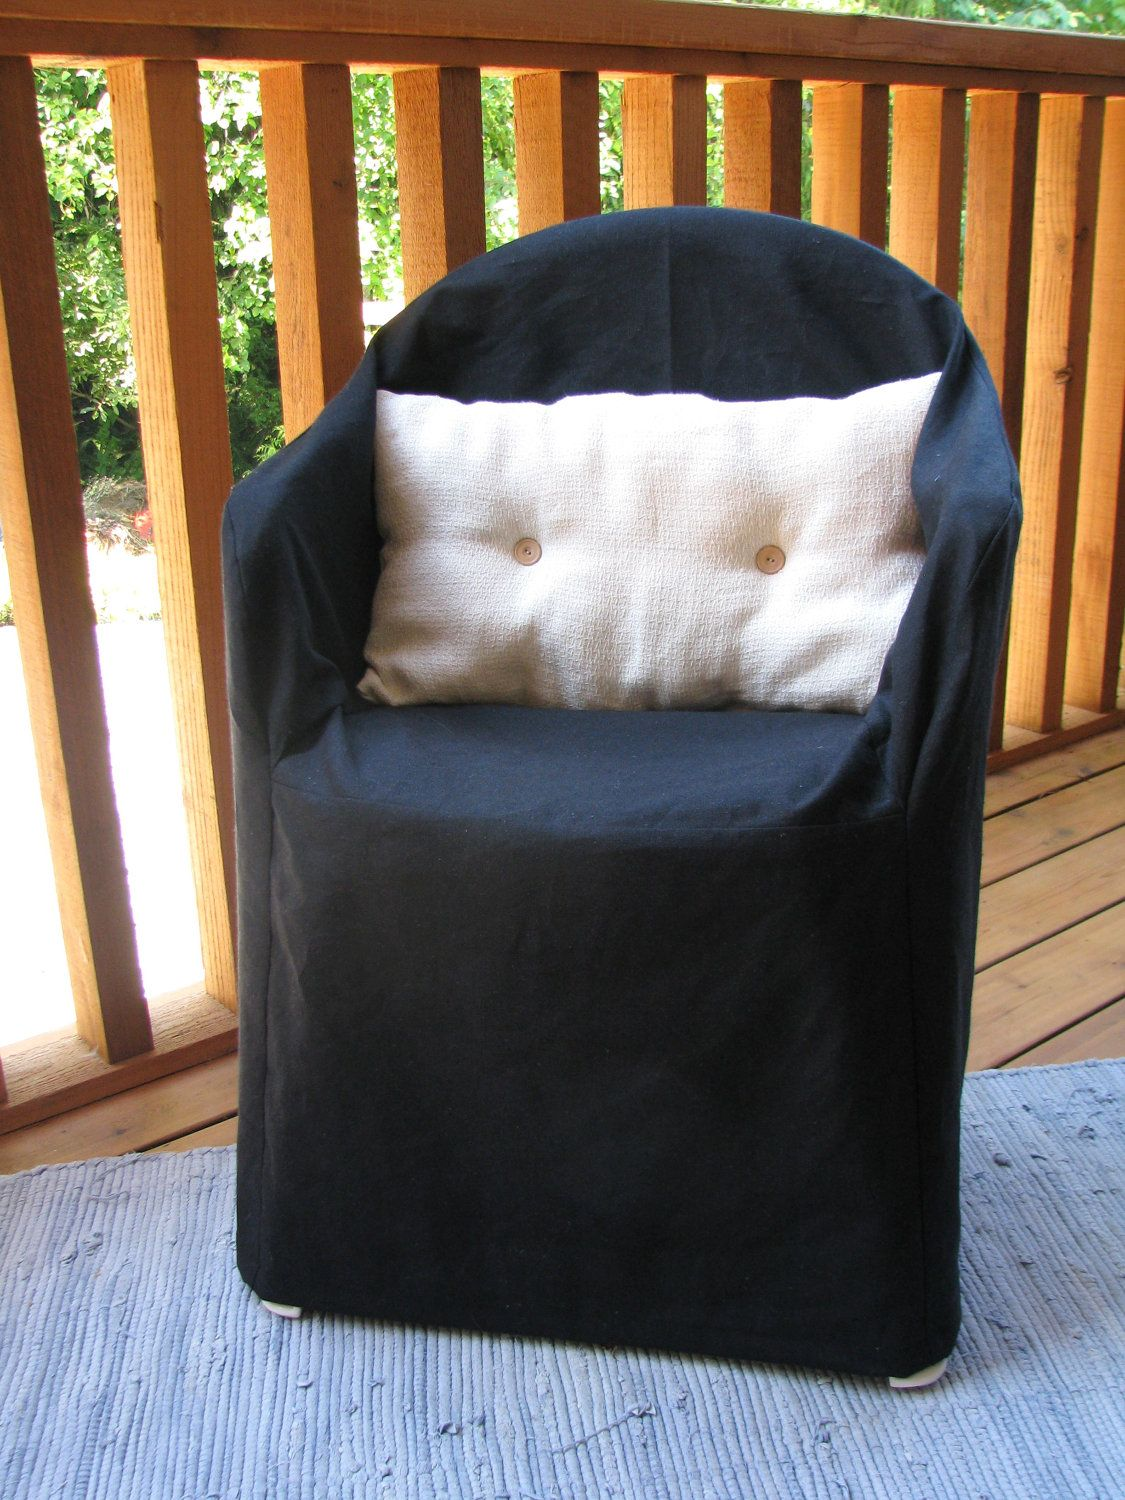 Ordinary Slipcovers For Outdoor Furniture #4: 1000+ Images About Resin Chair Covers On Pinterest | Plastic Resin, Outdoor Chairs And Slipcovers